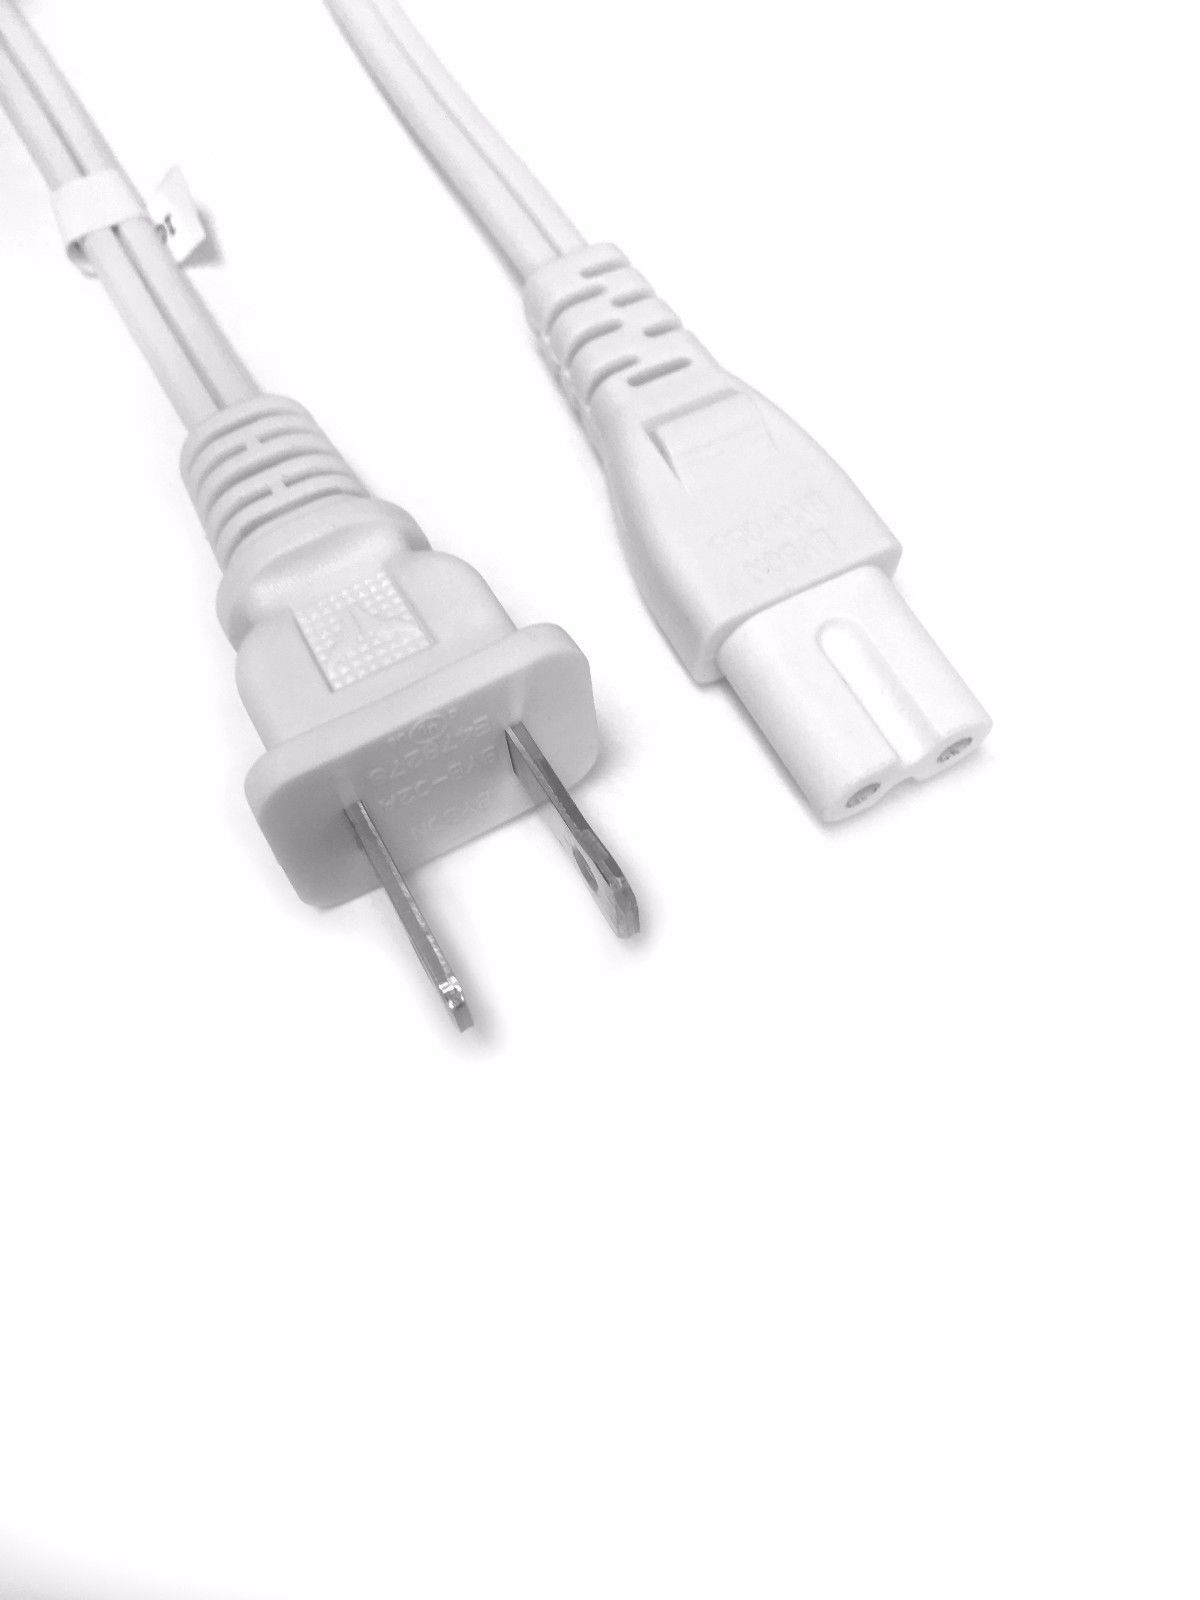 BYBON CAT6 Solid Copper UTP Ethernet Patch Cable RJ45 Yellow UL 1,2,3,5,8,10ft